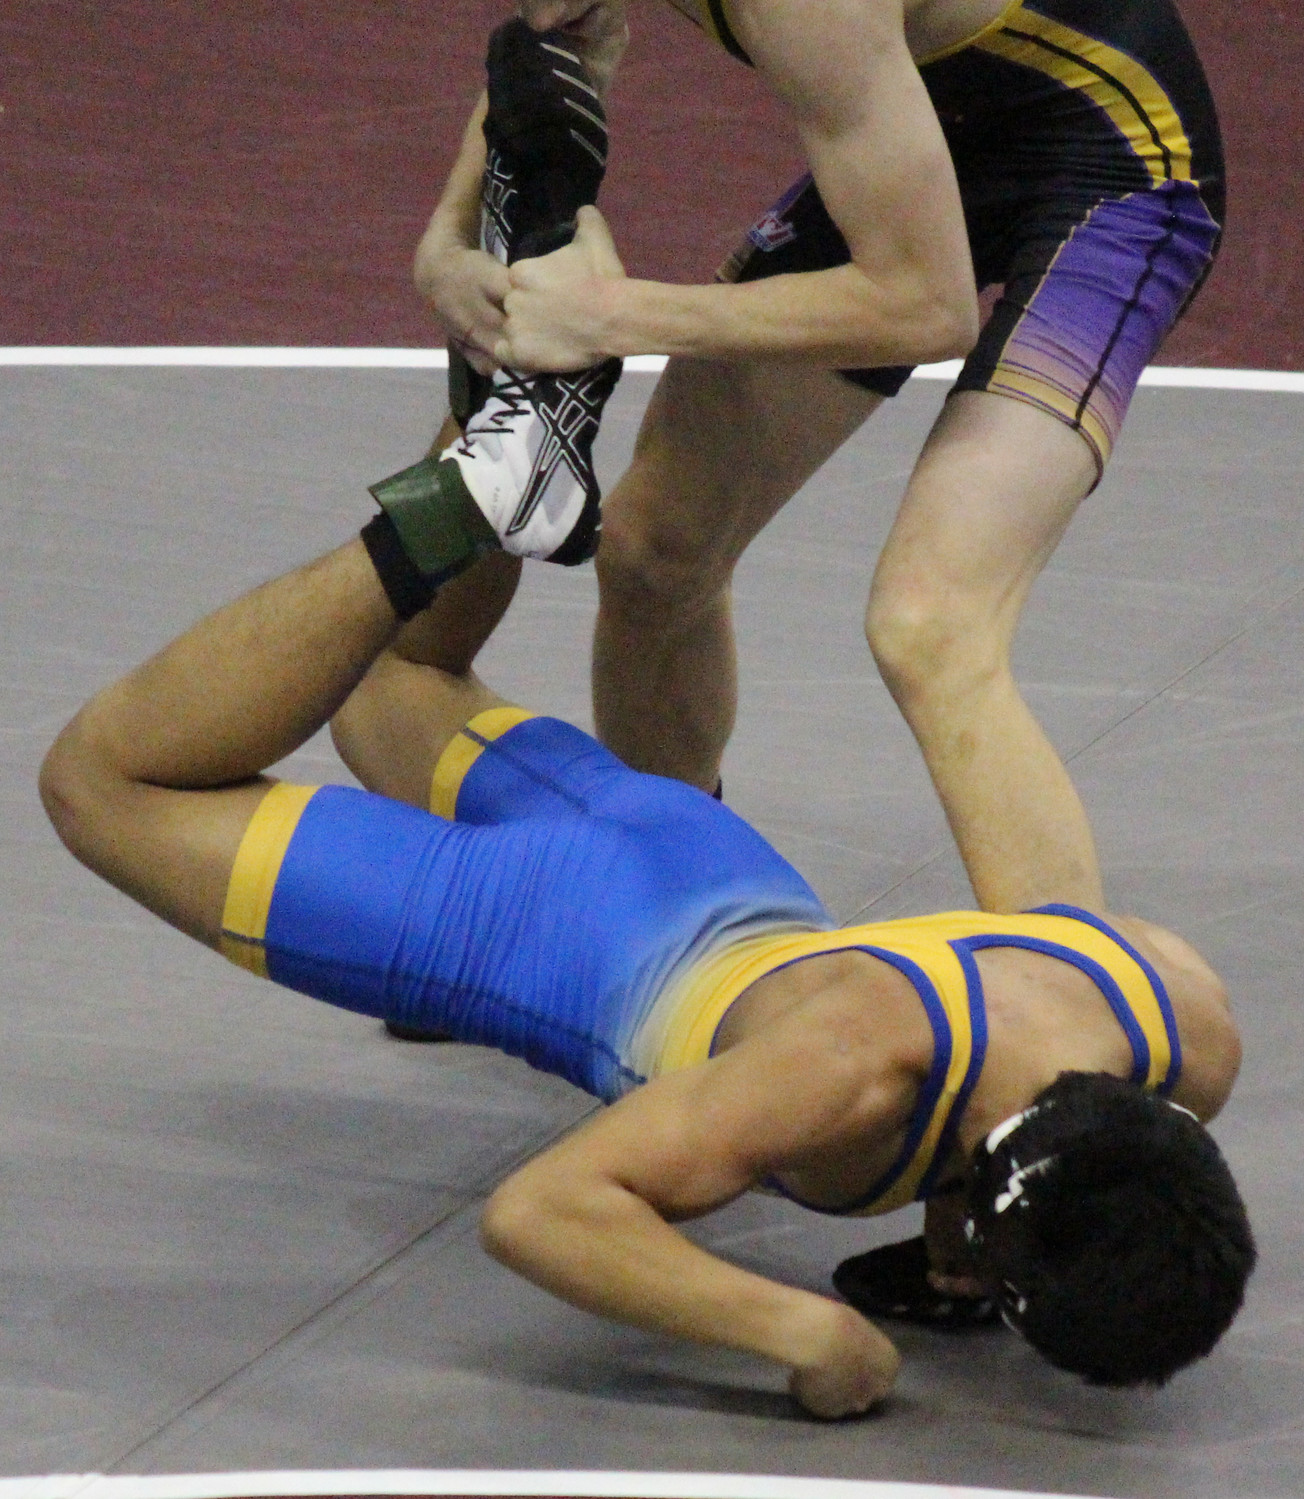 Zach Malay showed improvement with a 6-5 decision in a rematch with Andrew Stafford of Boiling Springs, who had defeated him a week prior.